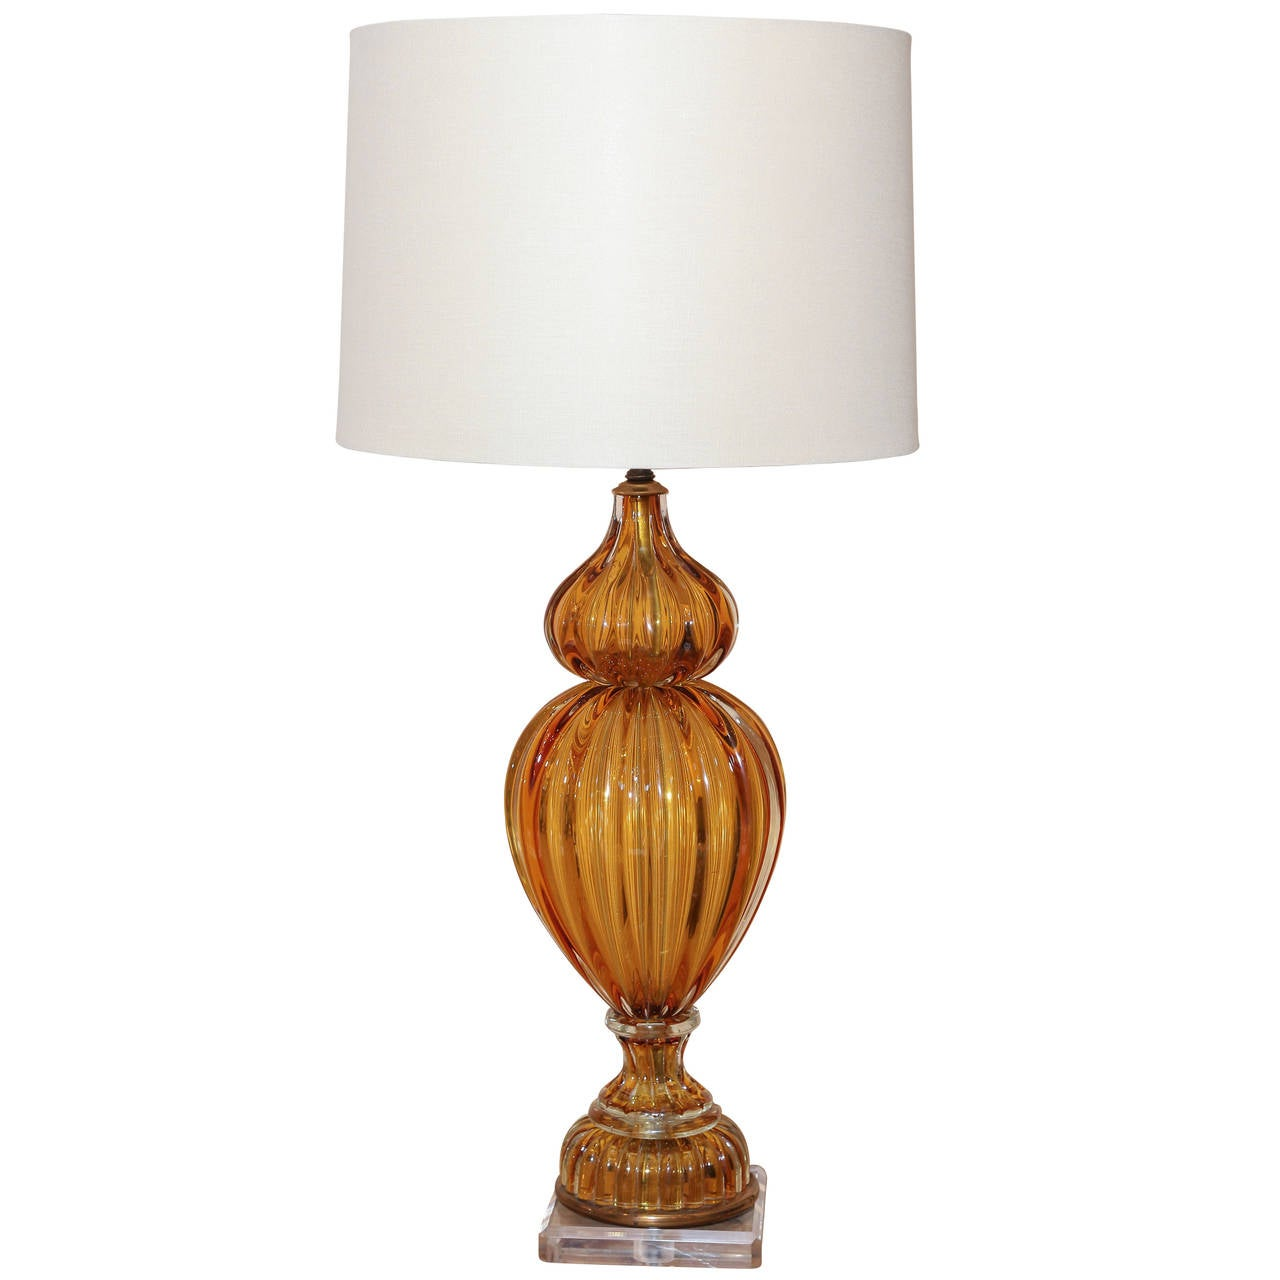 murano glass lamp for sale at 1stdibs. Black Bedroom Furniture Sets. Home Design Ideas